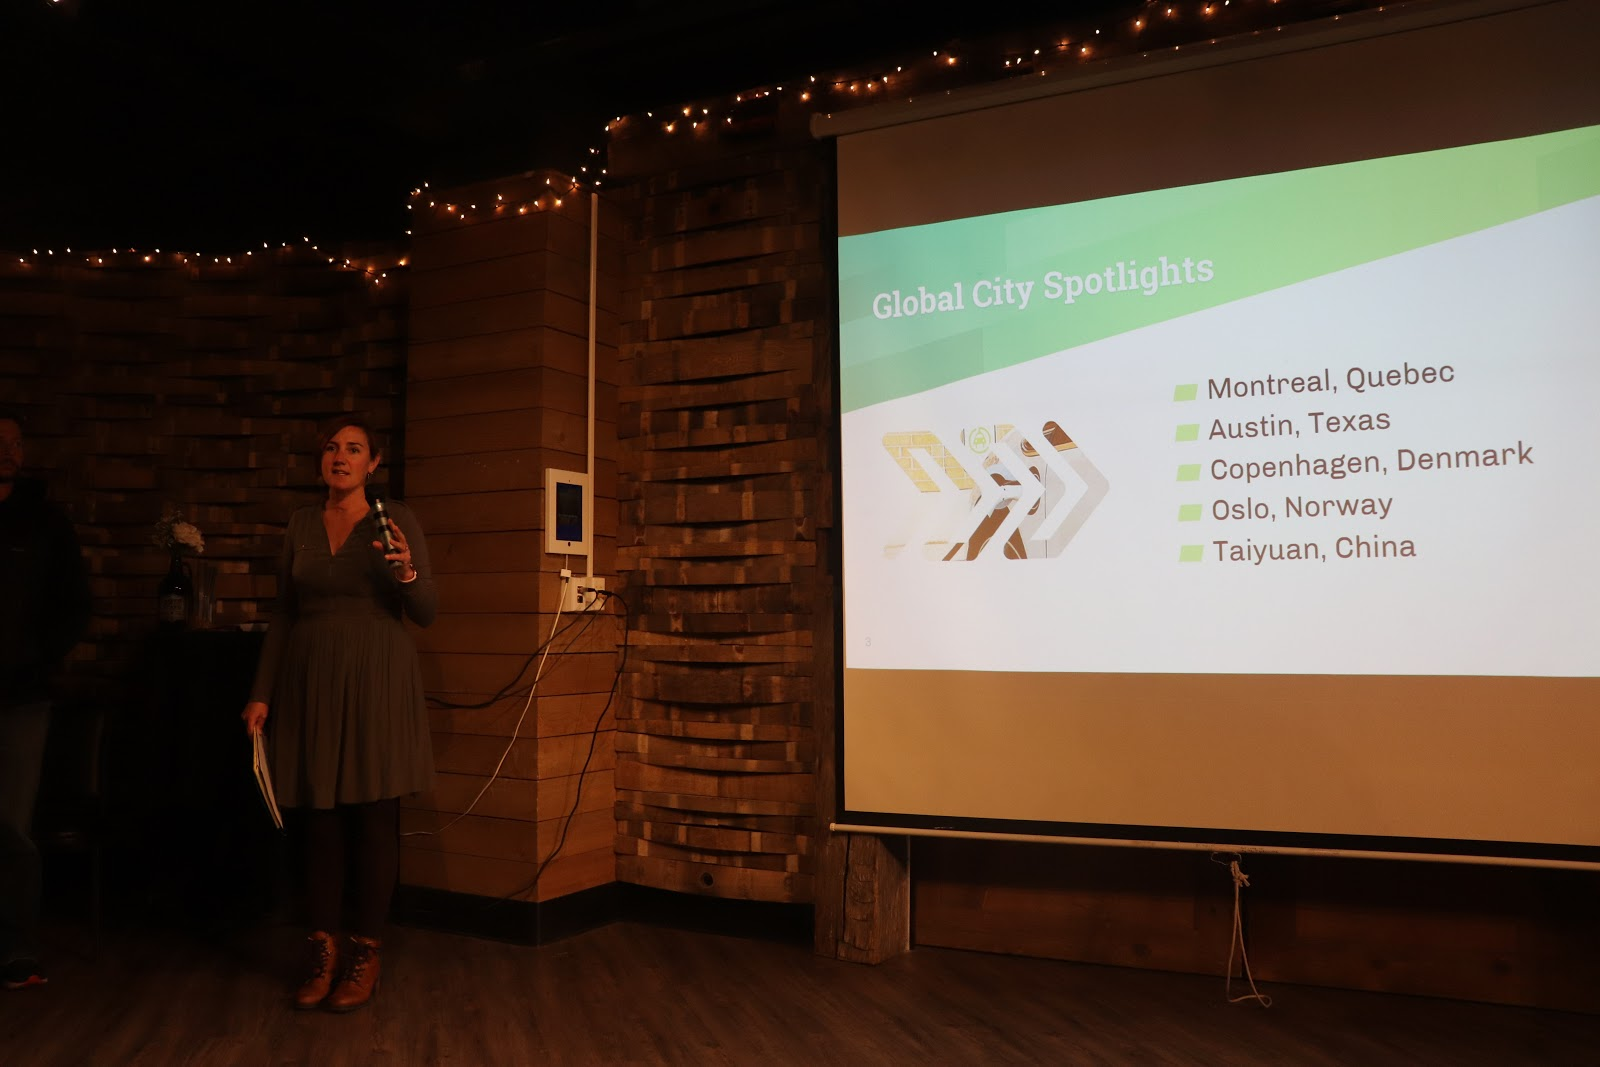 Shaina Kilcoyne with the Municipality of Anchorage explains how electric vehicles are an integral part of many cities ' health and financial growth.